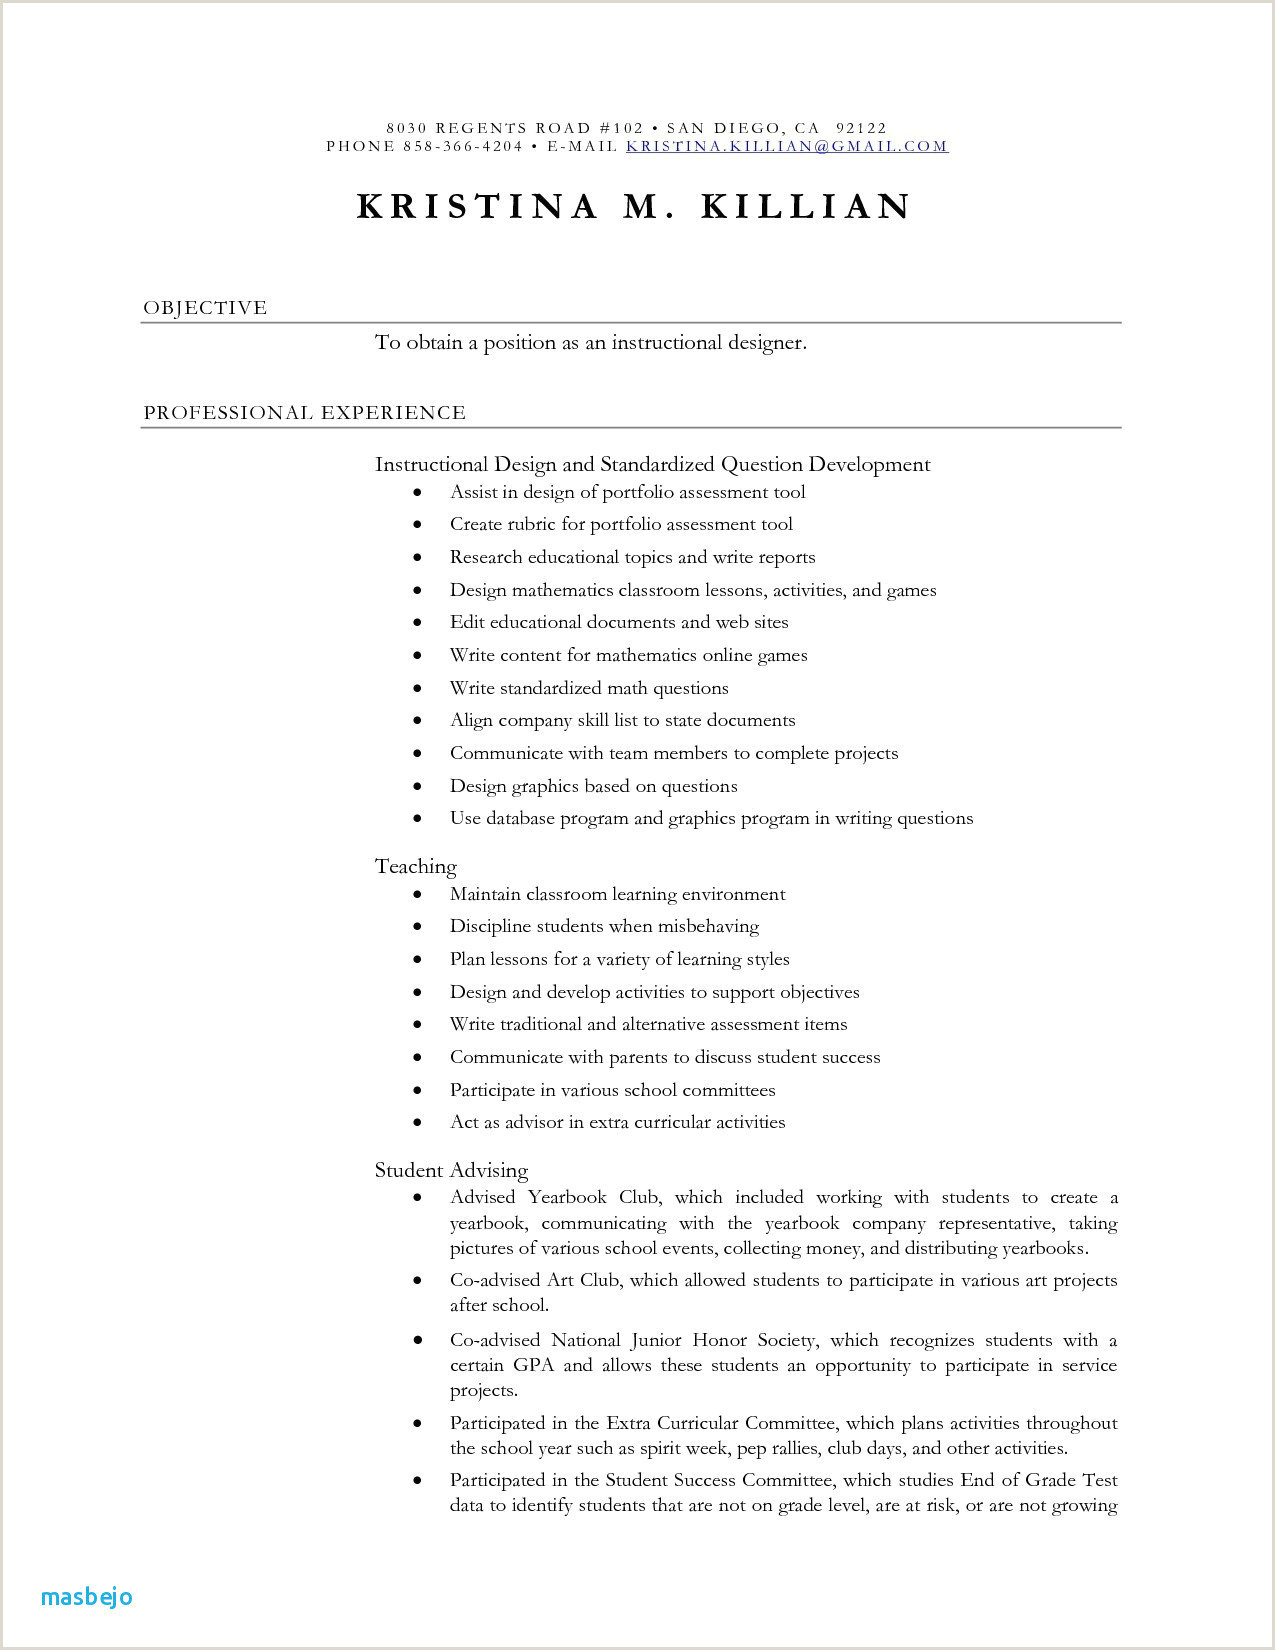 Counselor Resume Samples Fresh Resume Template for Admissions Counselor – 50ger